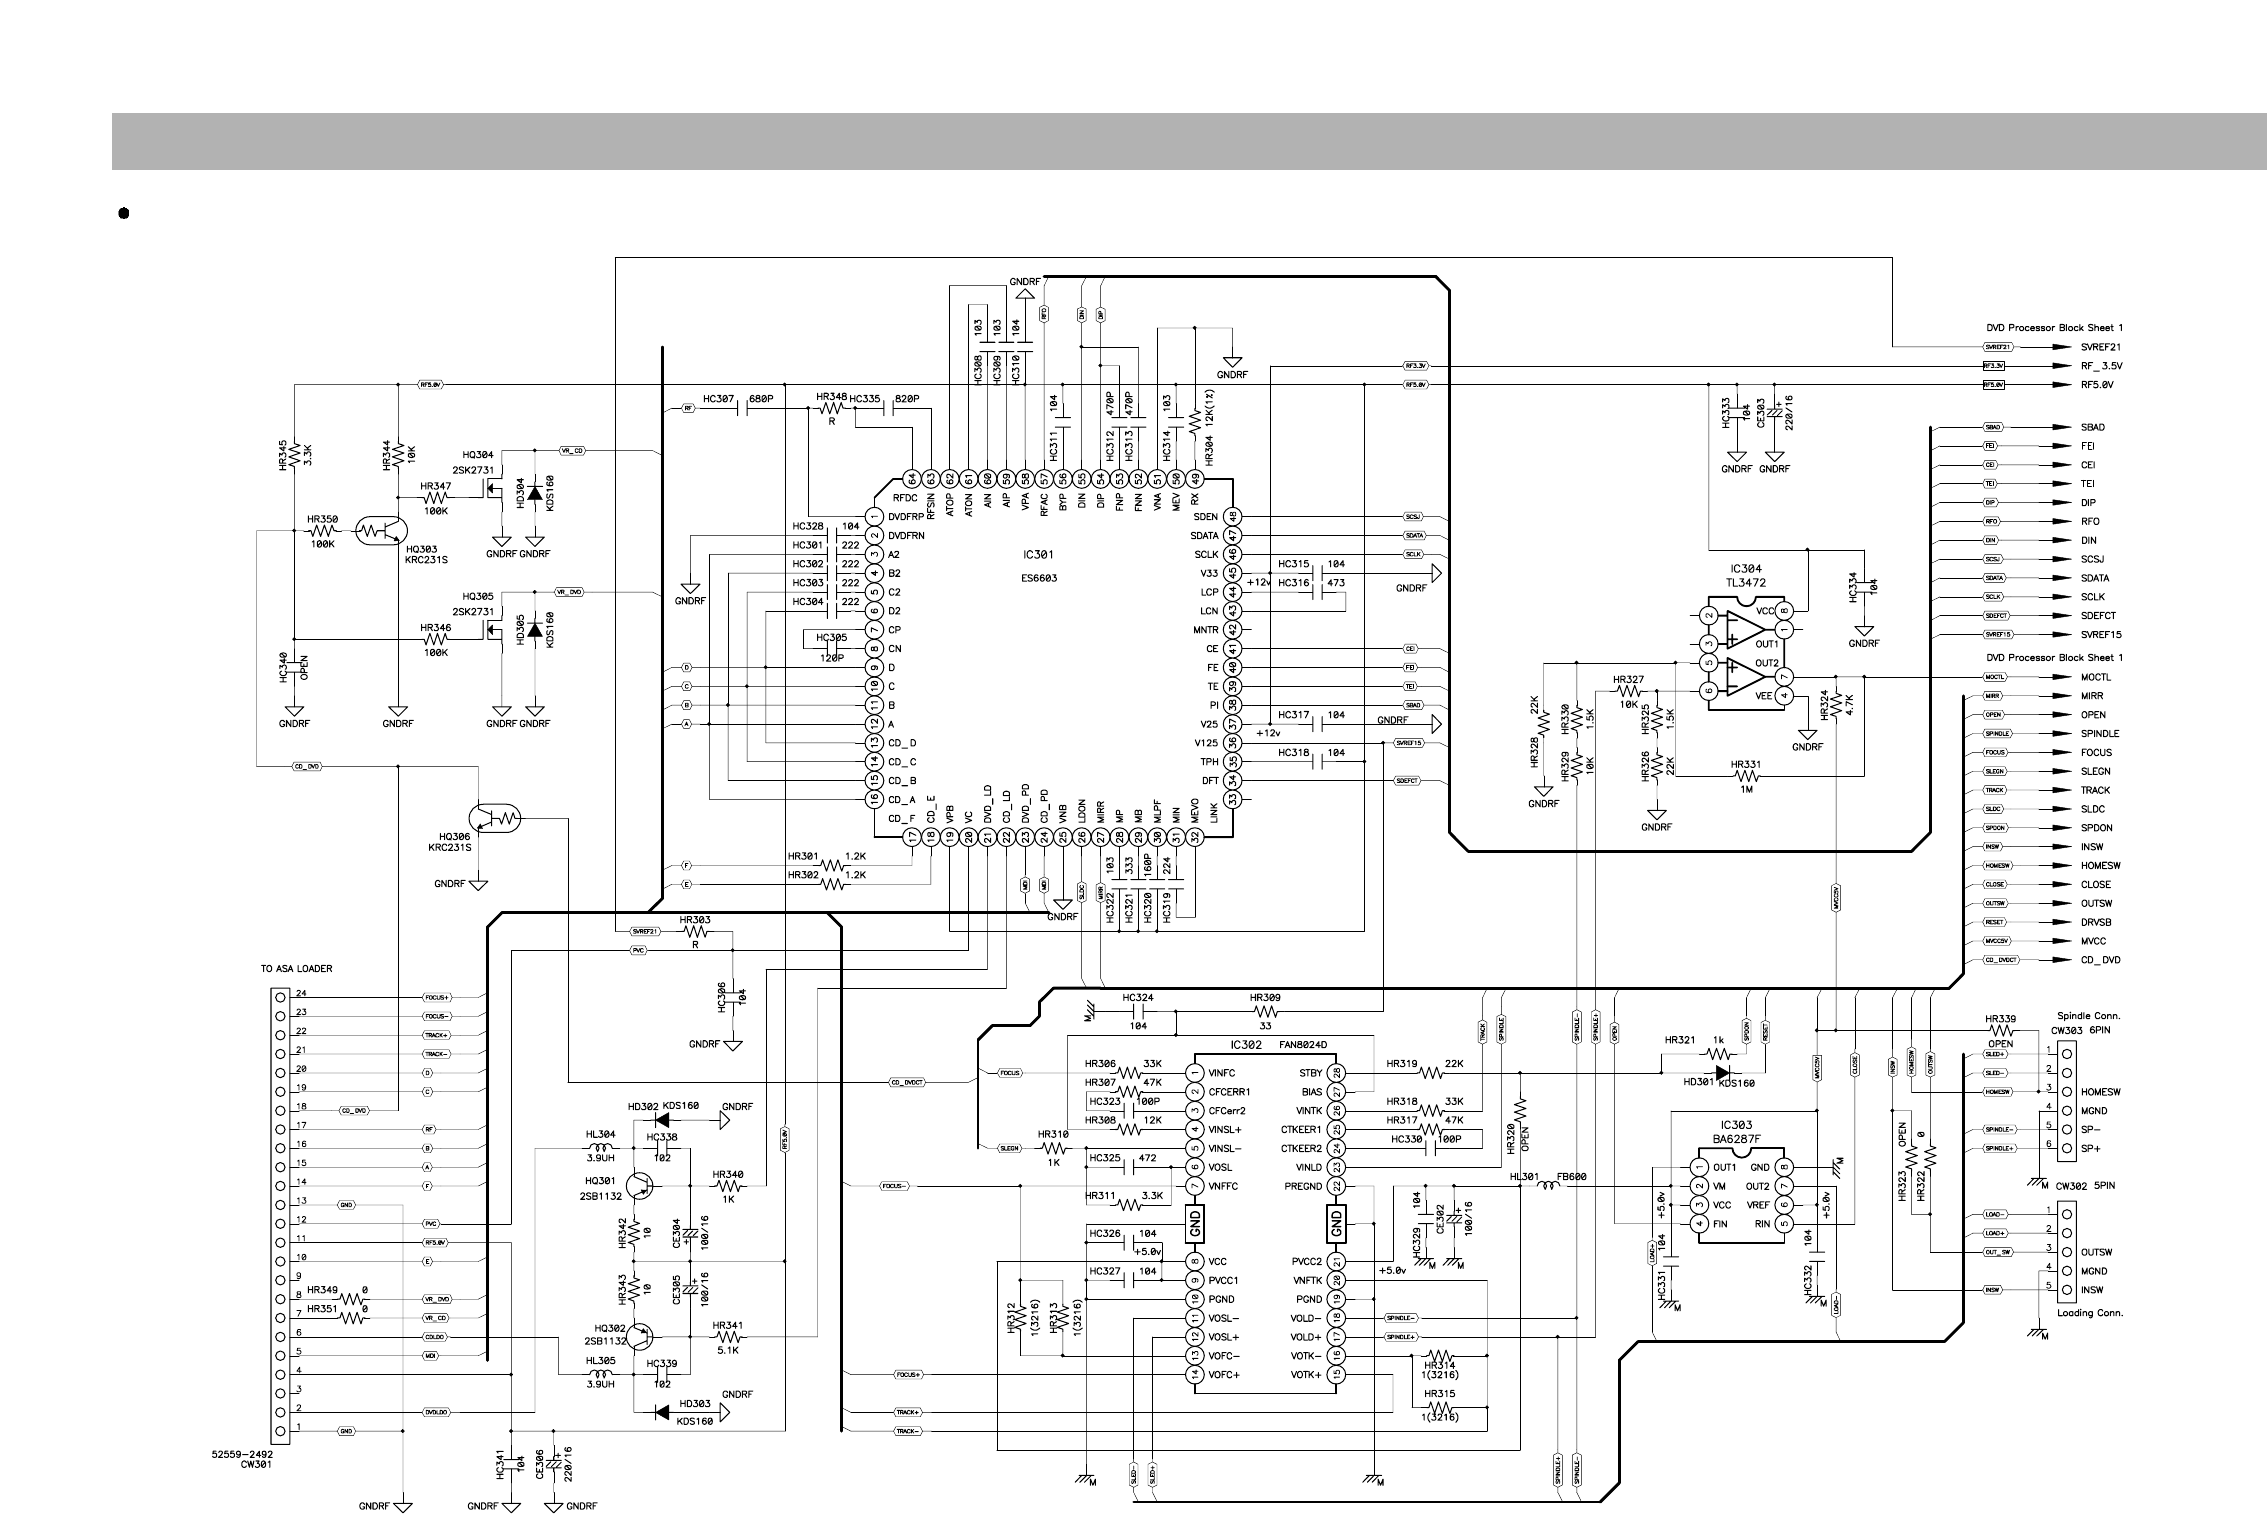 Page 34 of daewoo dvd player rd 400 user guide manualsonline schematic diagram ccuart Image collections